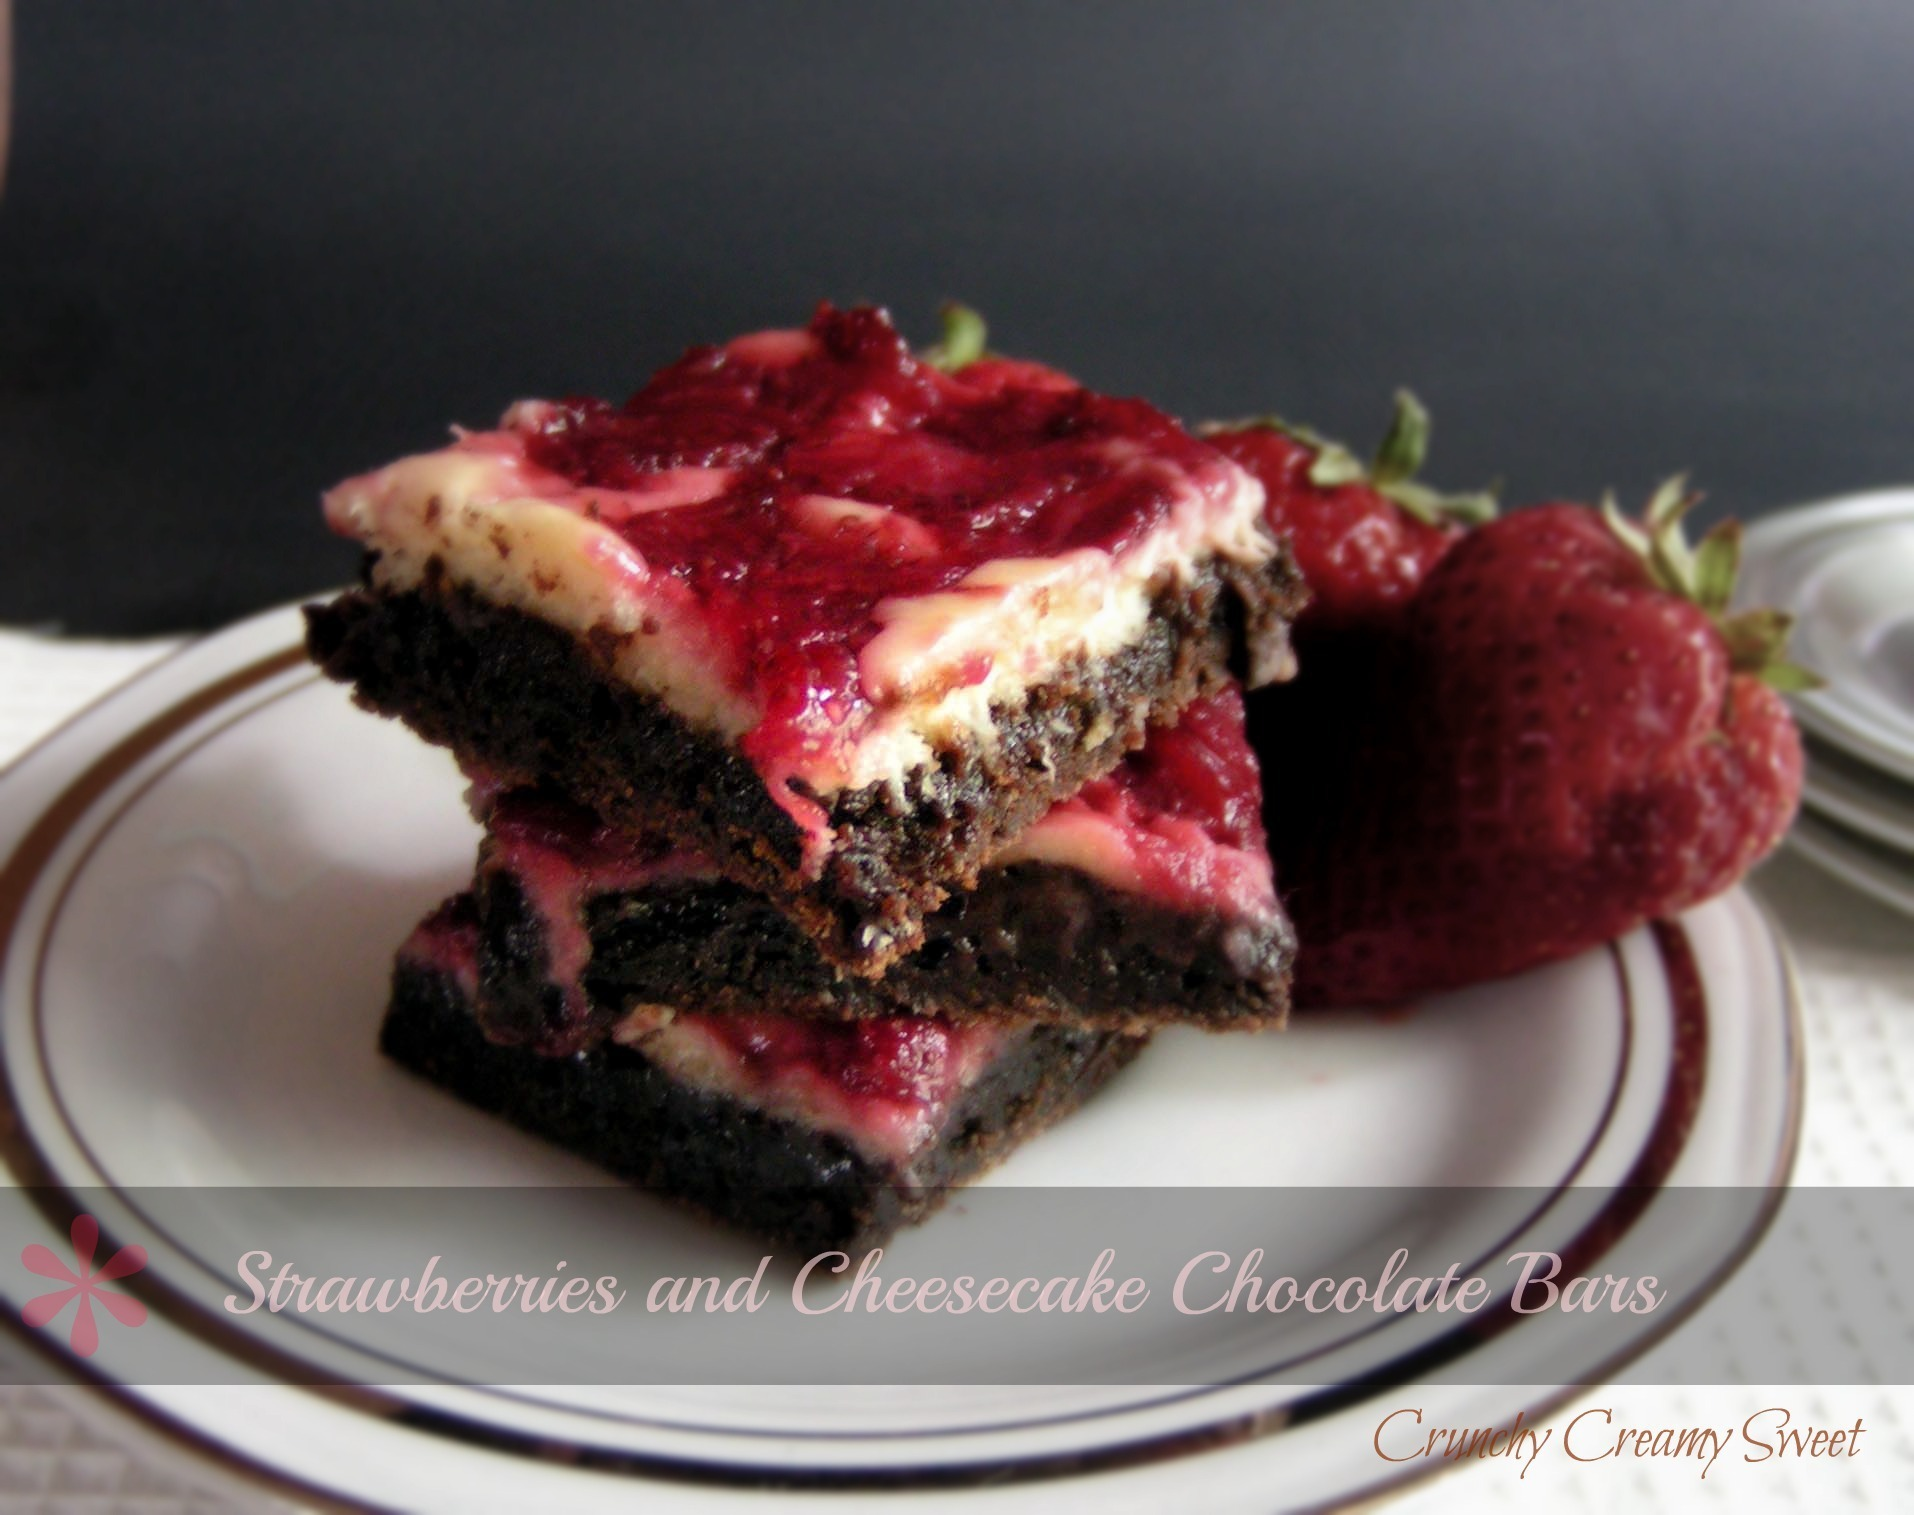 Strawberries and Cheesecake Chocolate Bars